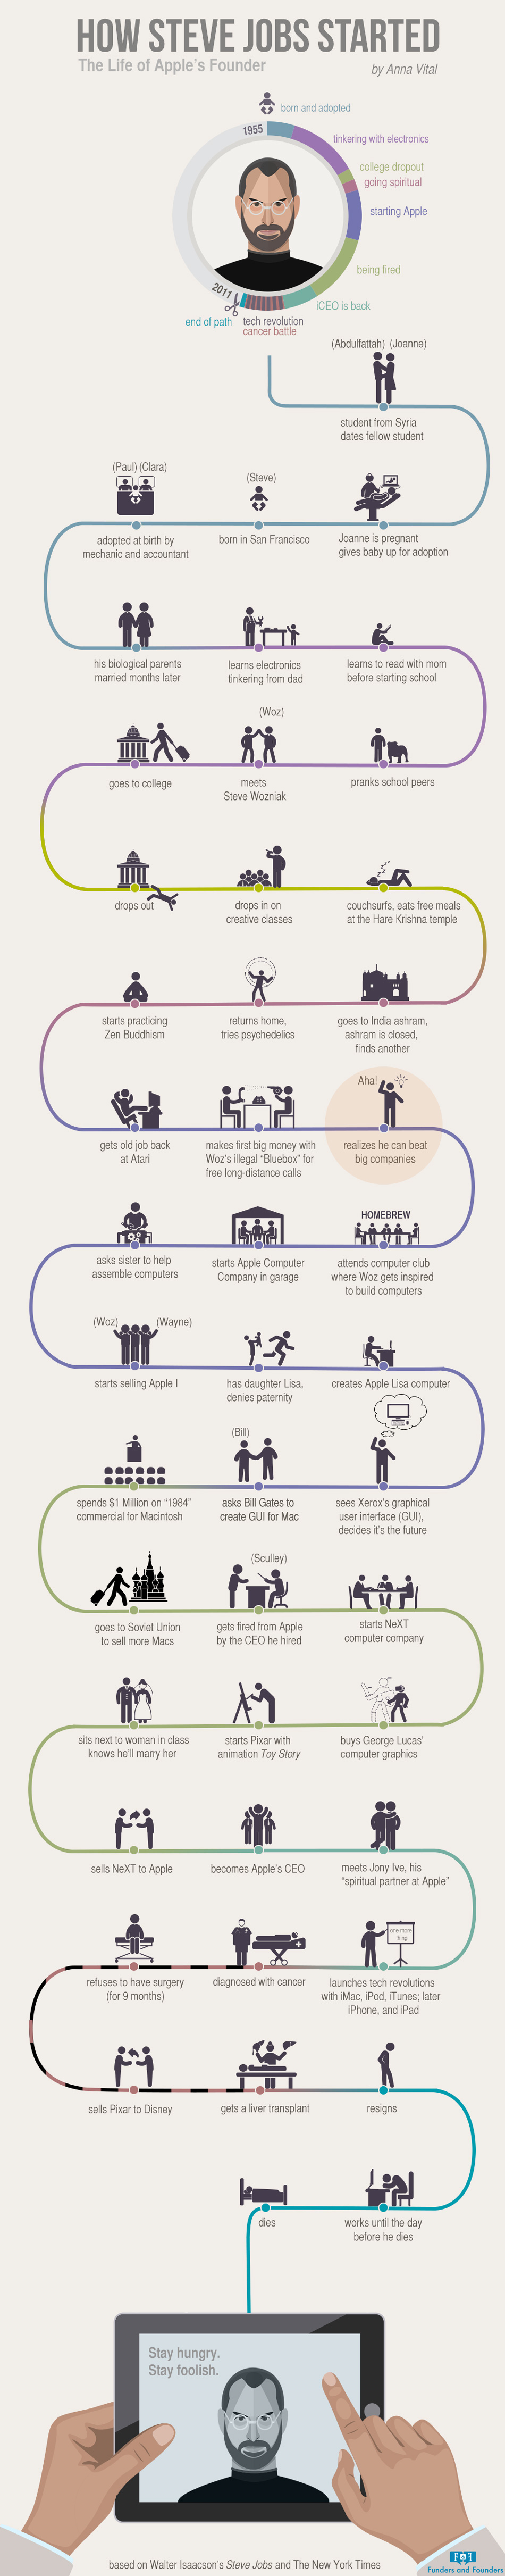 How Steve Jobs Started - Infographic